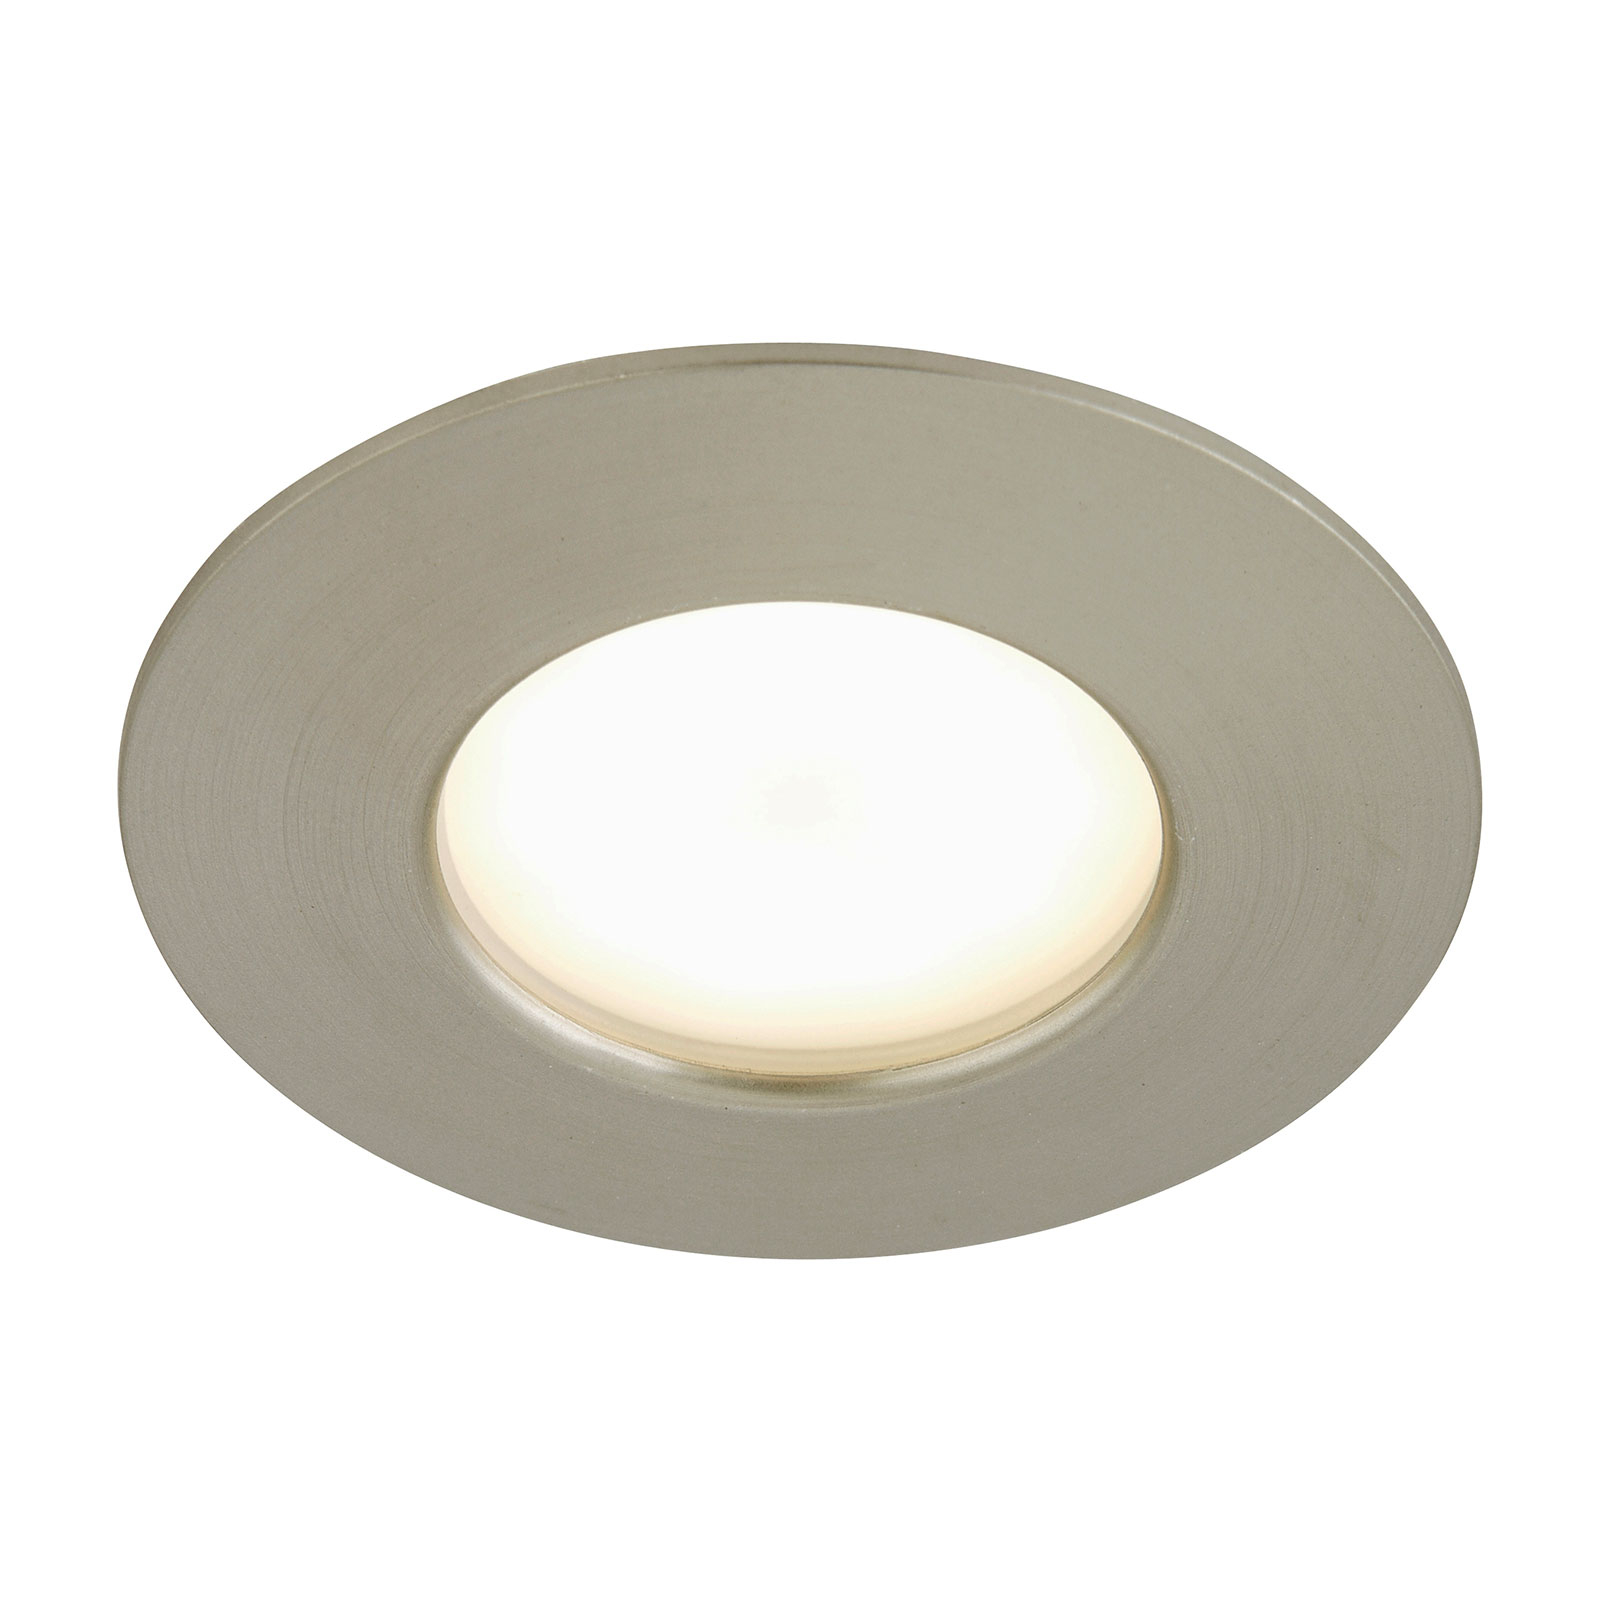 Spot encastré LED Till pour l'ext., nickel mat